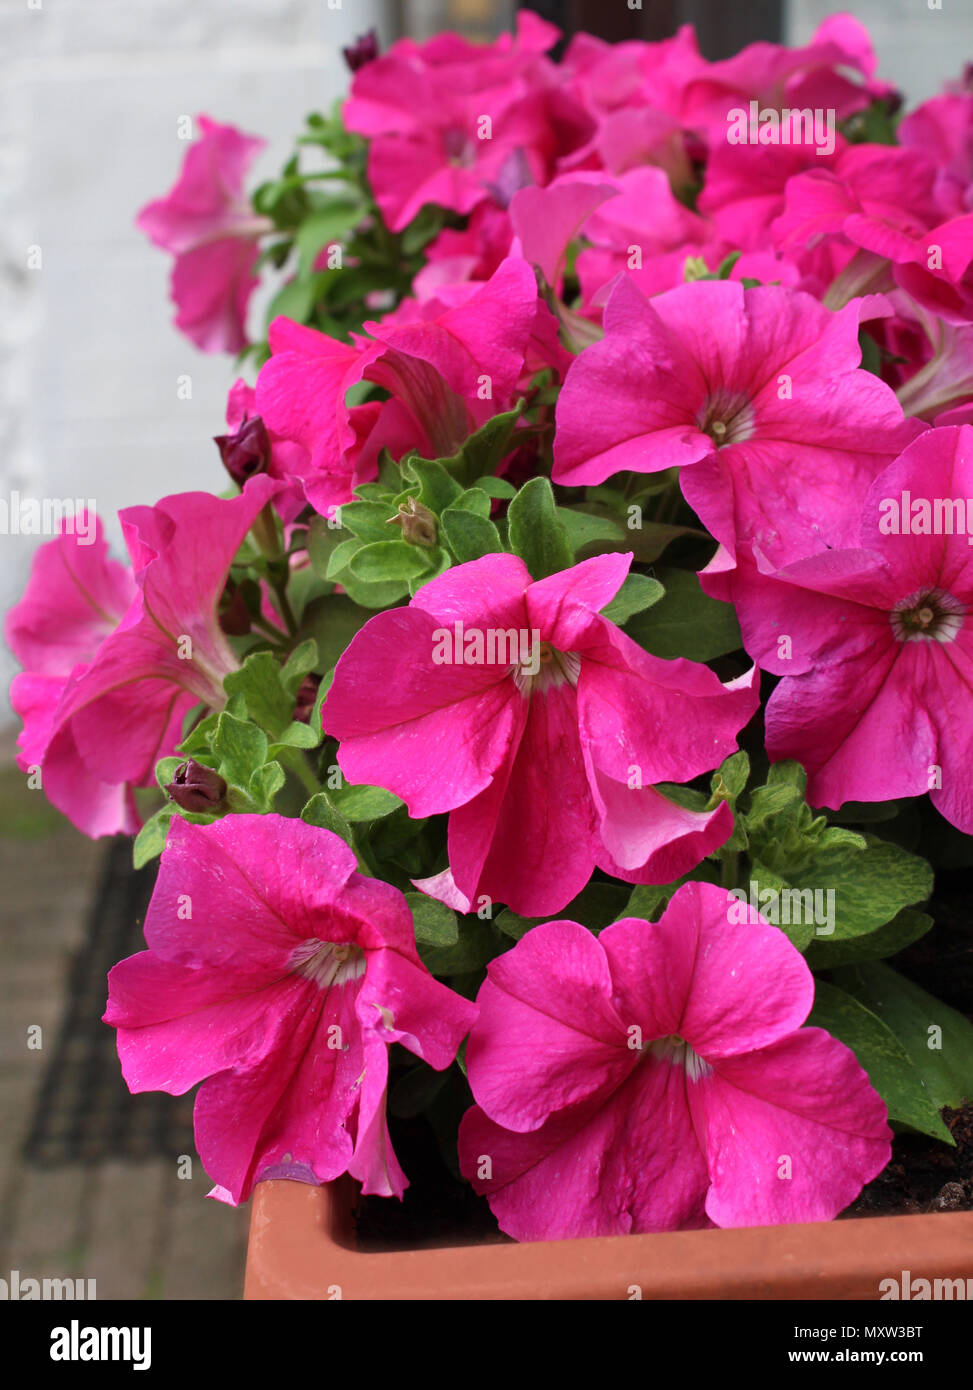 The vibrant pink flowers of of the popular summer bedding plant, Petunia, growing in a window box. - Stock Image